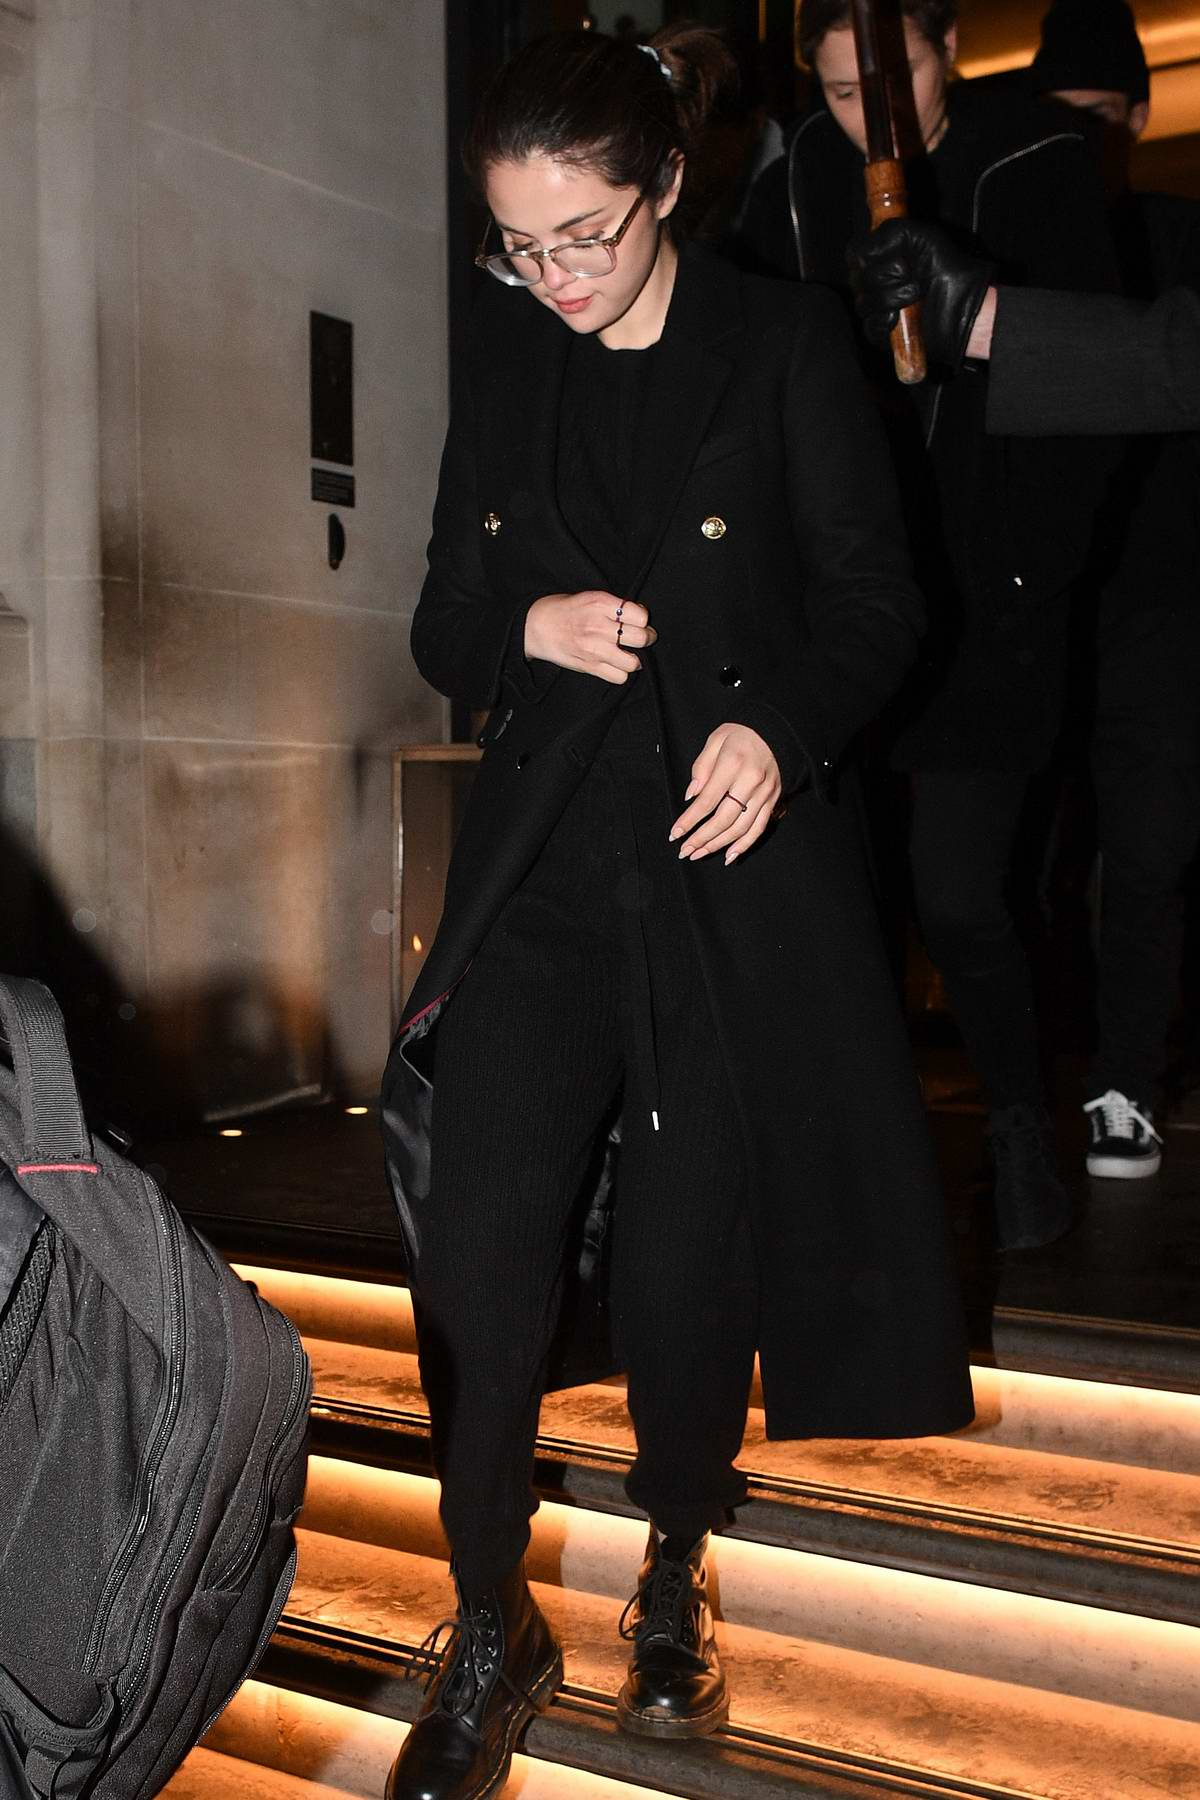 Selena Gomez seen leaving her hotel wearing an all black outfit in London, UK